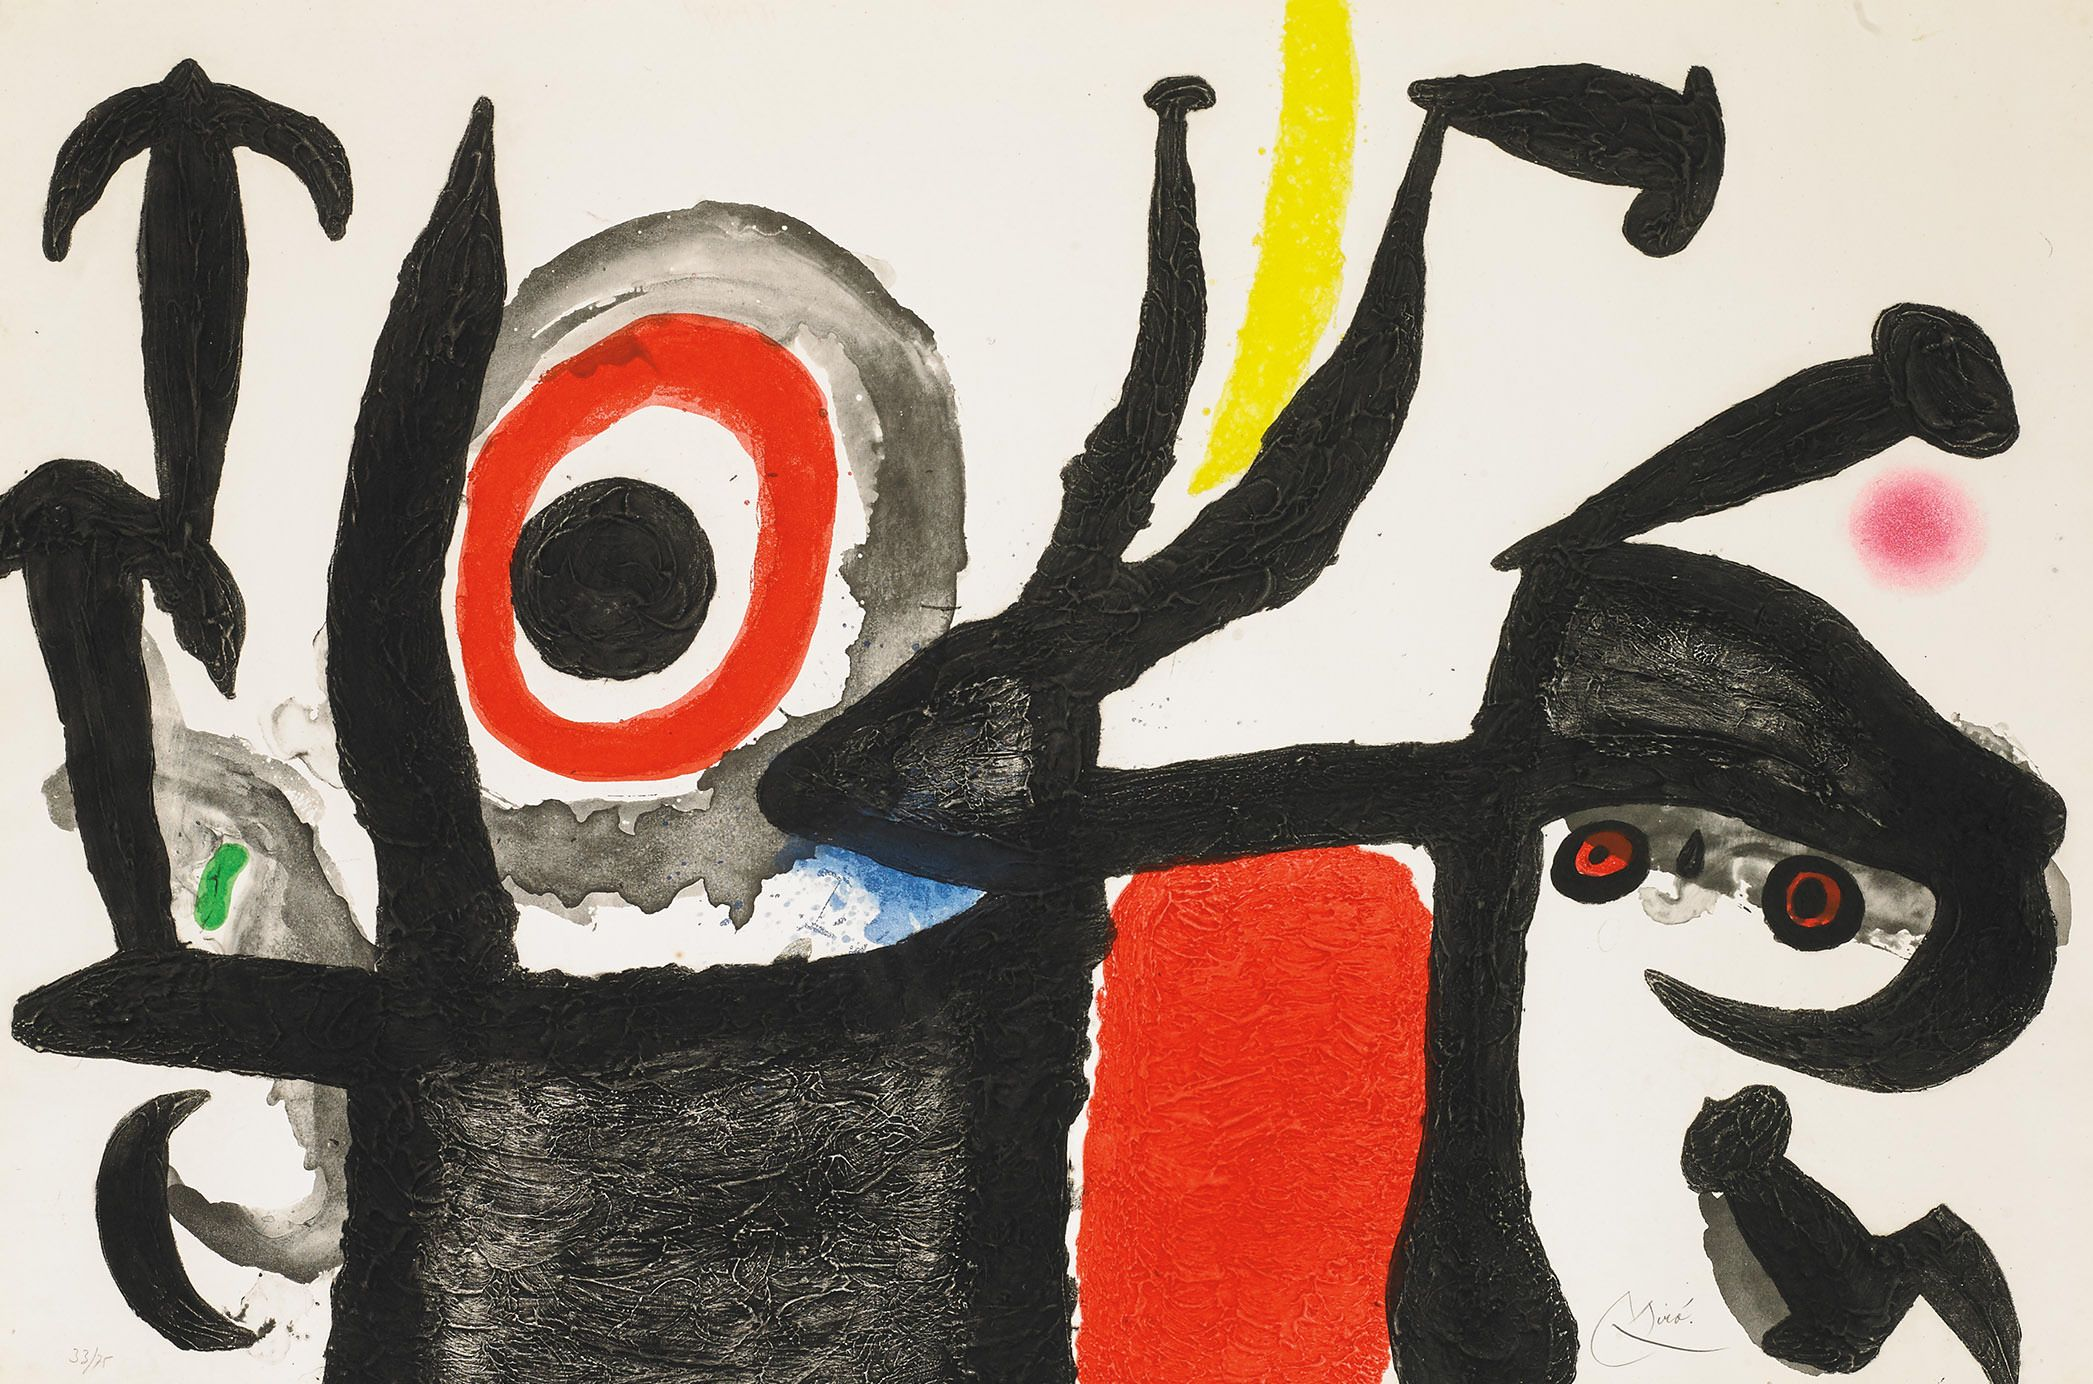 09381357c3b Miró - Manoletina - Spanish terminology for a maneuver in which a bull  charges from behind the Matador into his red muleta.